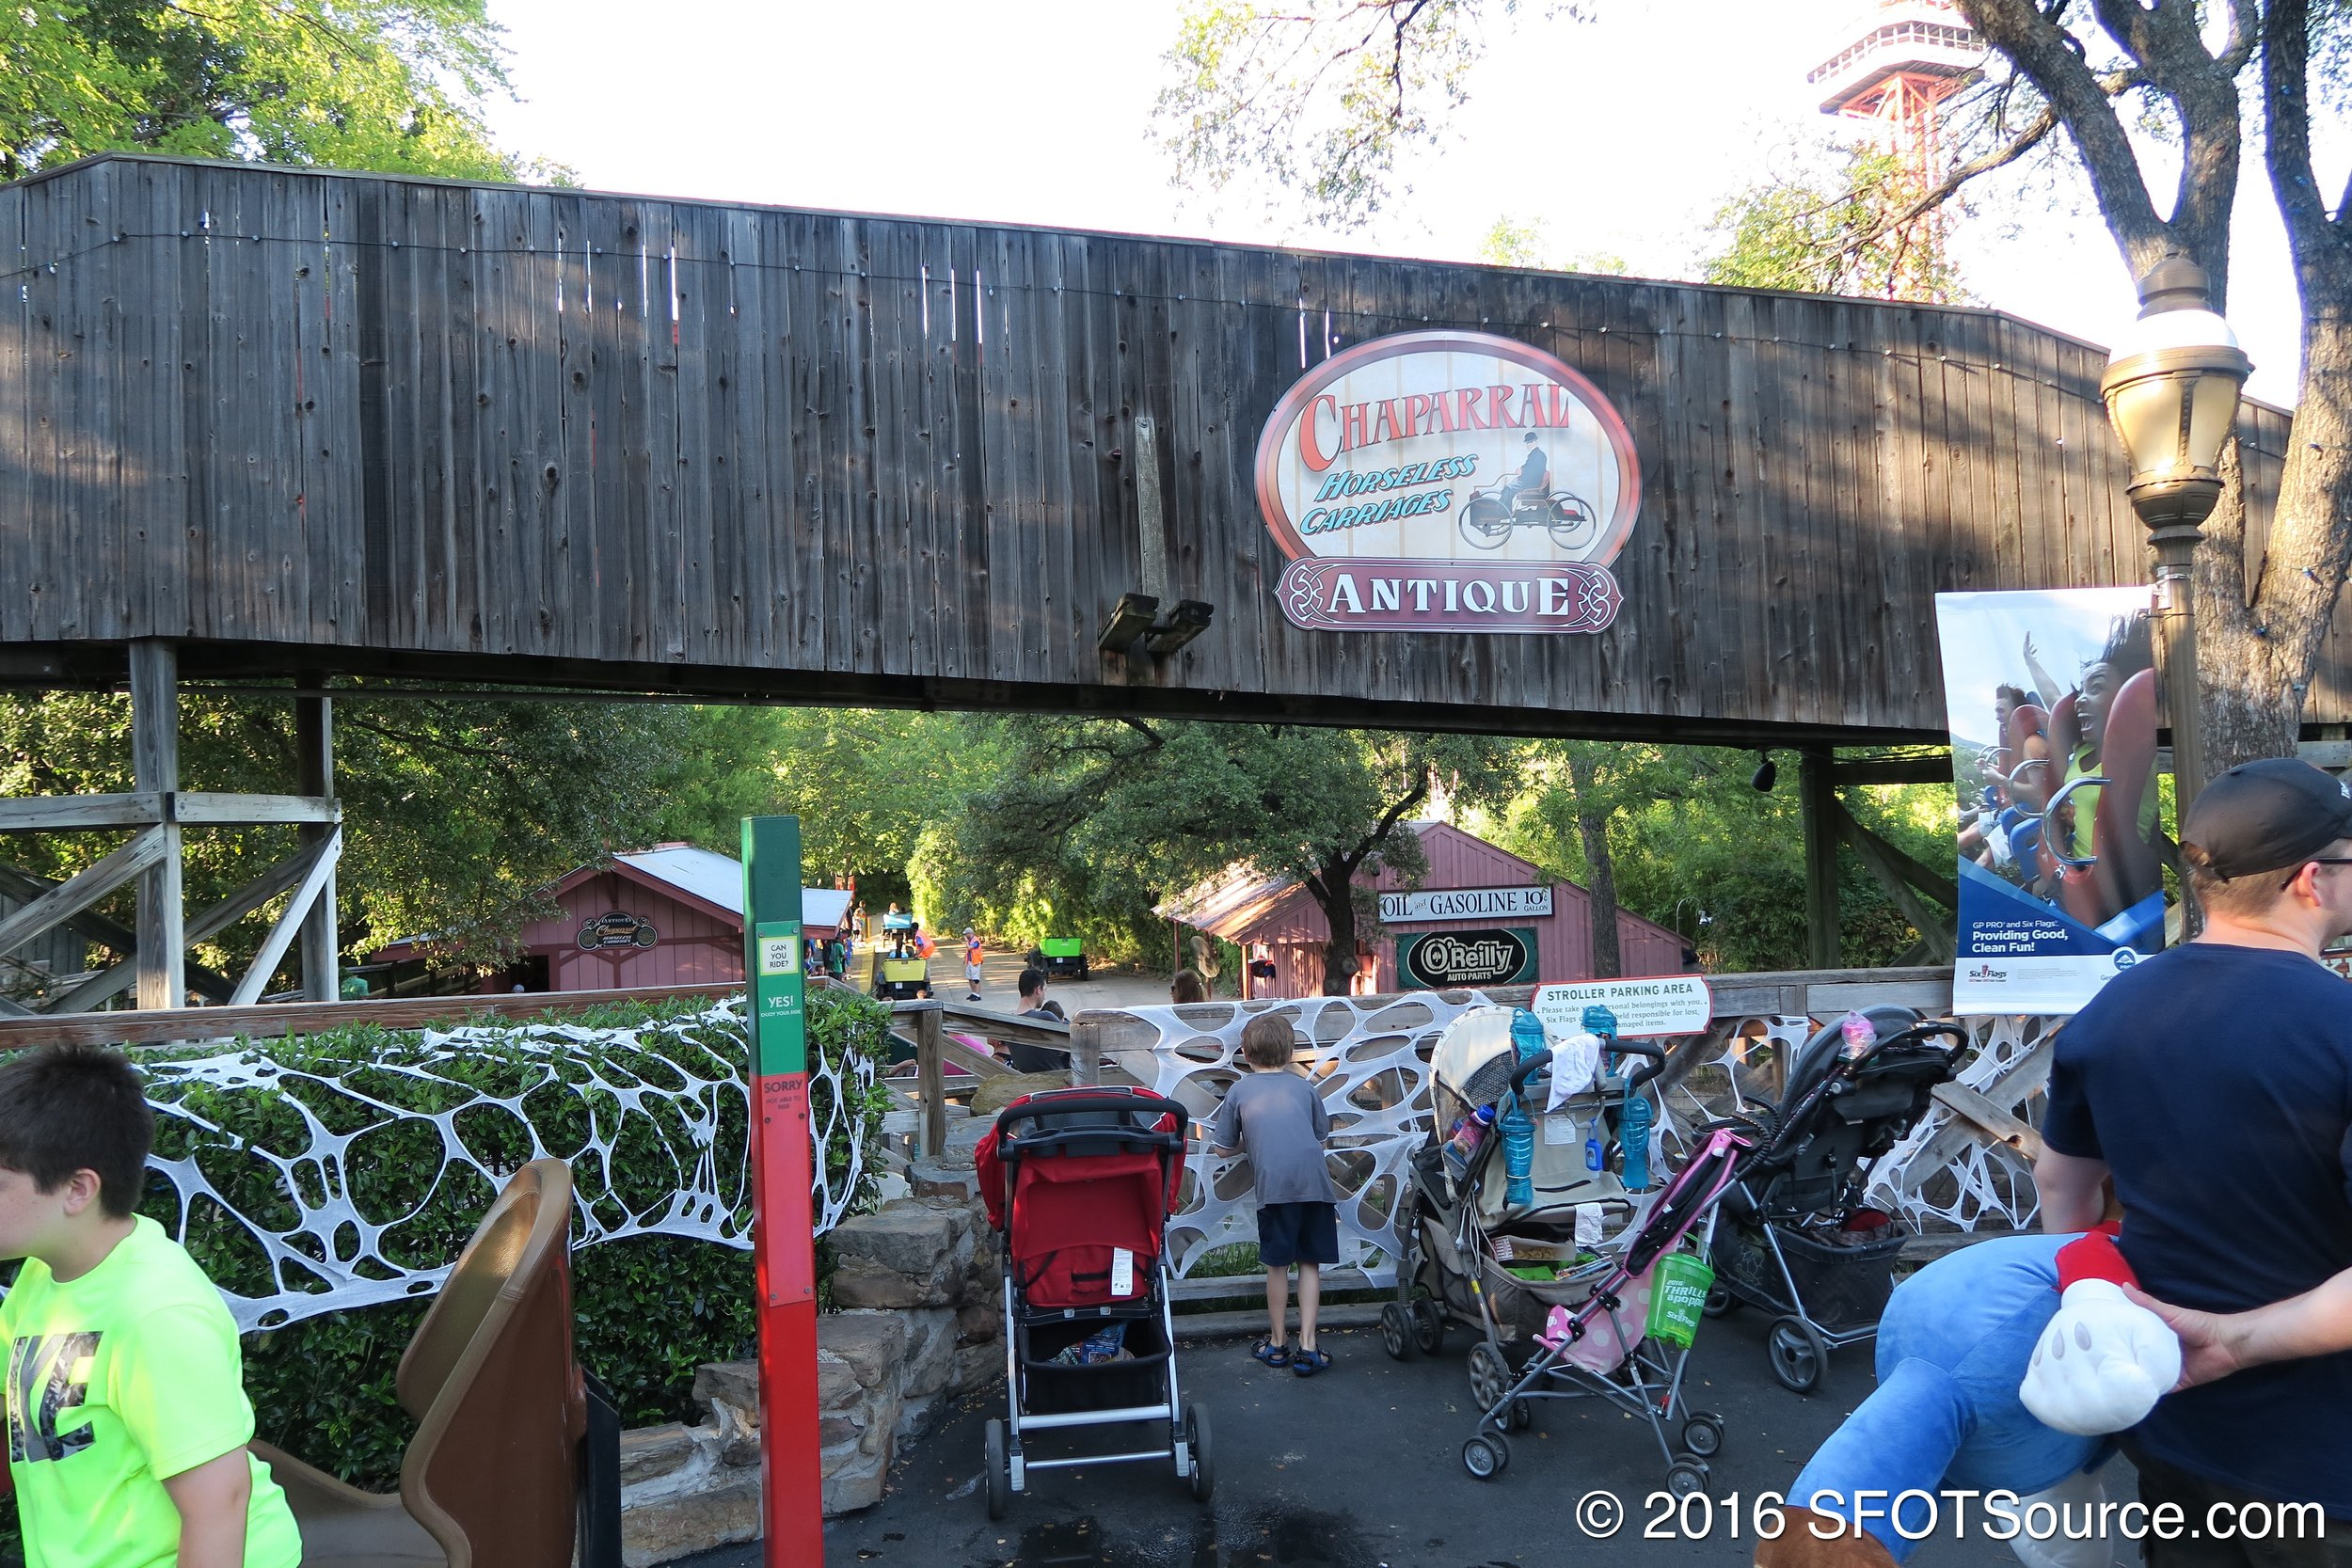 The entrance to Chaparral Antique Cars.